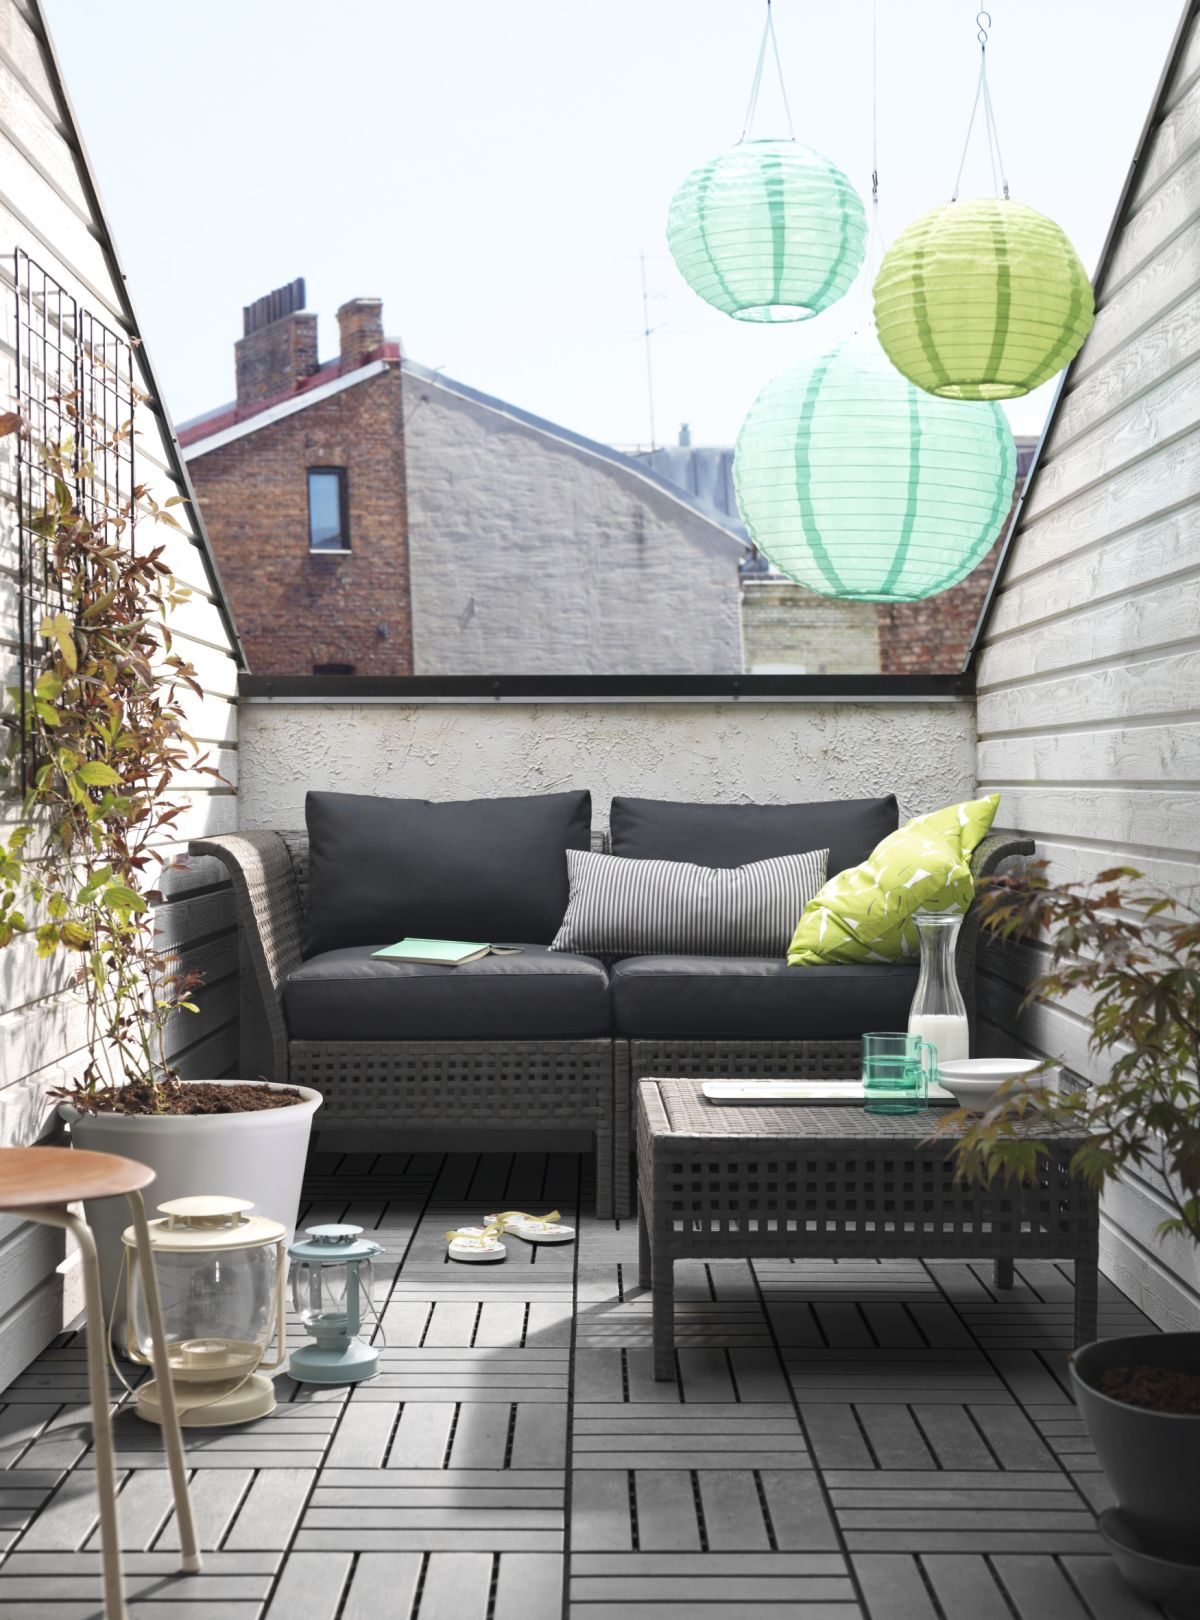 10 Ideas For Small Garden Terraces And Balconies Real Homes